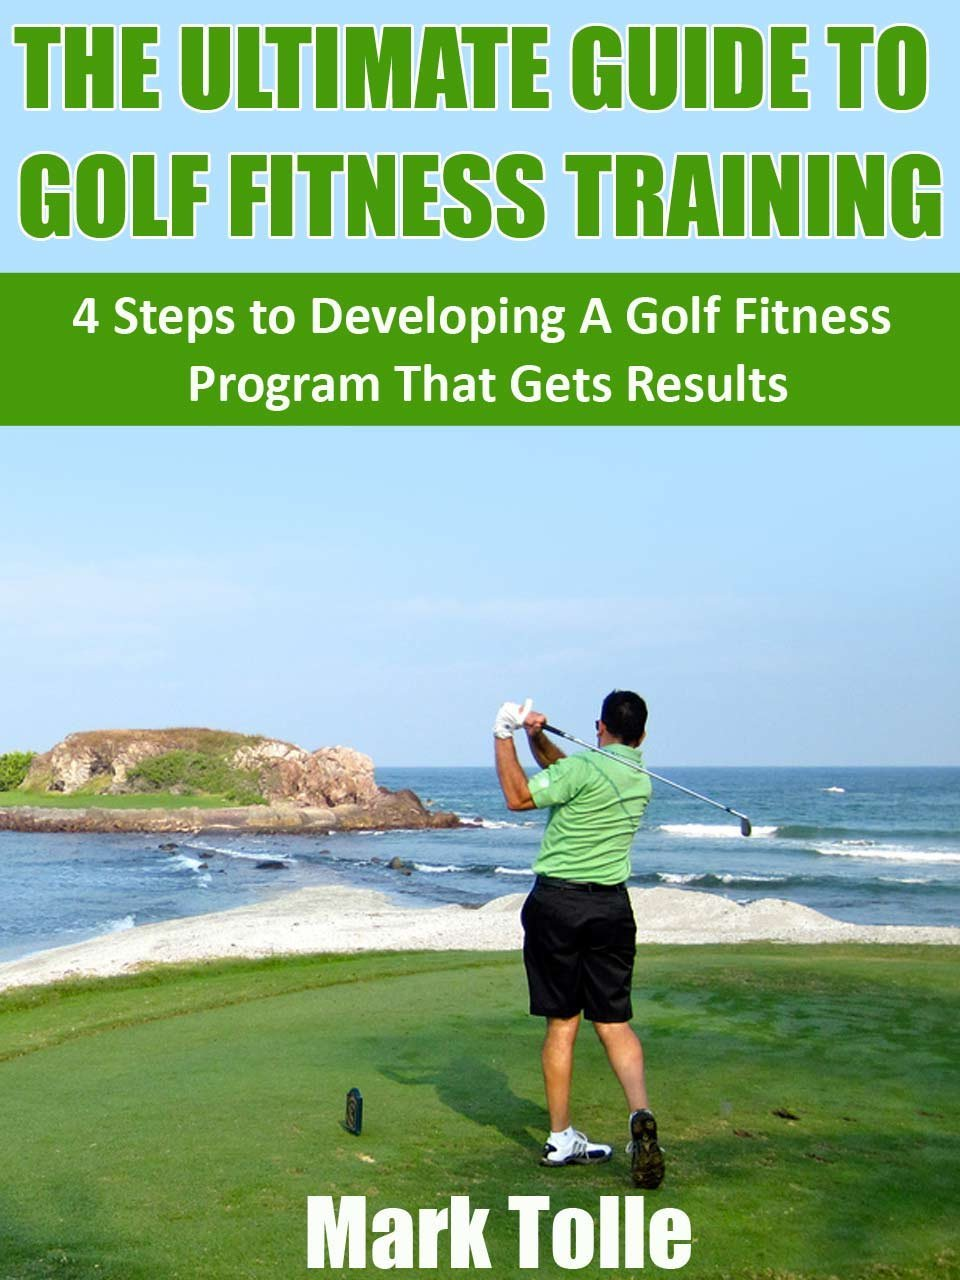 Ultimate Guide To Golf Fitness Training